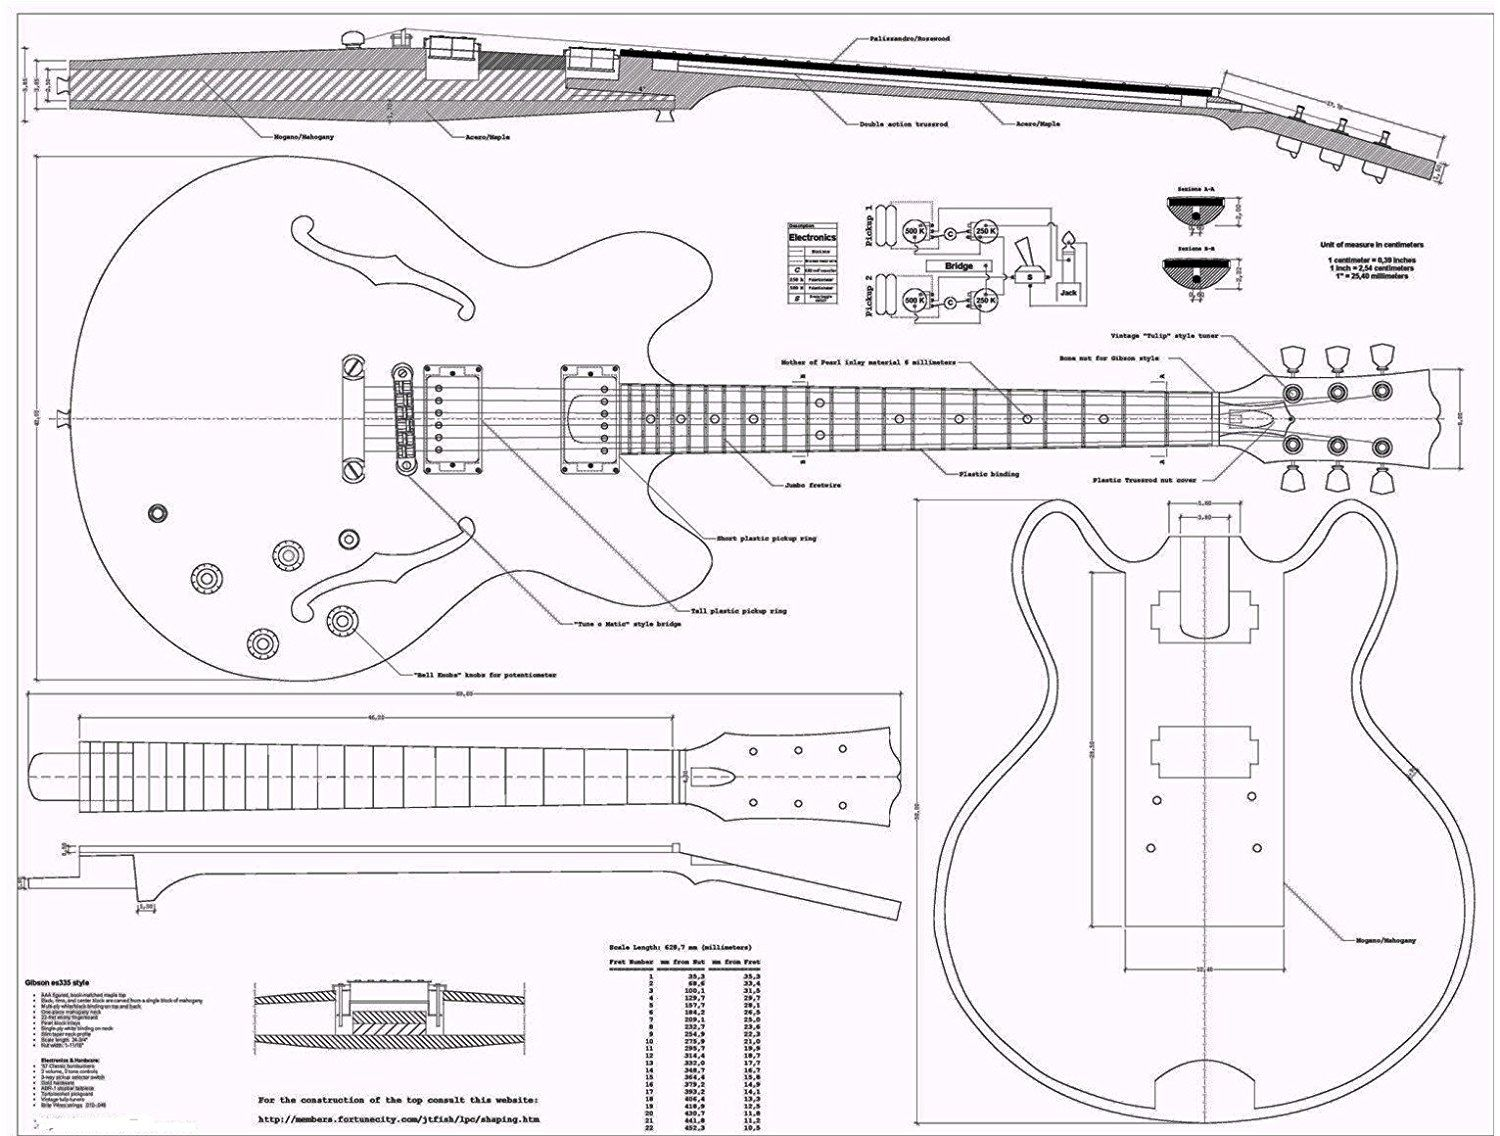 small resolution of gibson es335 jazz guitar plans full scale how to buildgibson es335 jazz guitar plans full scale